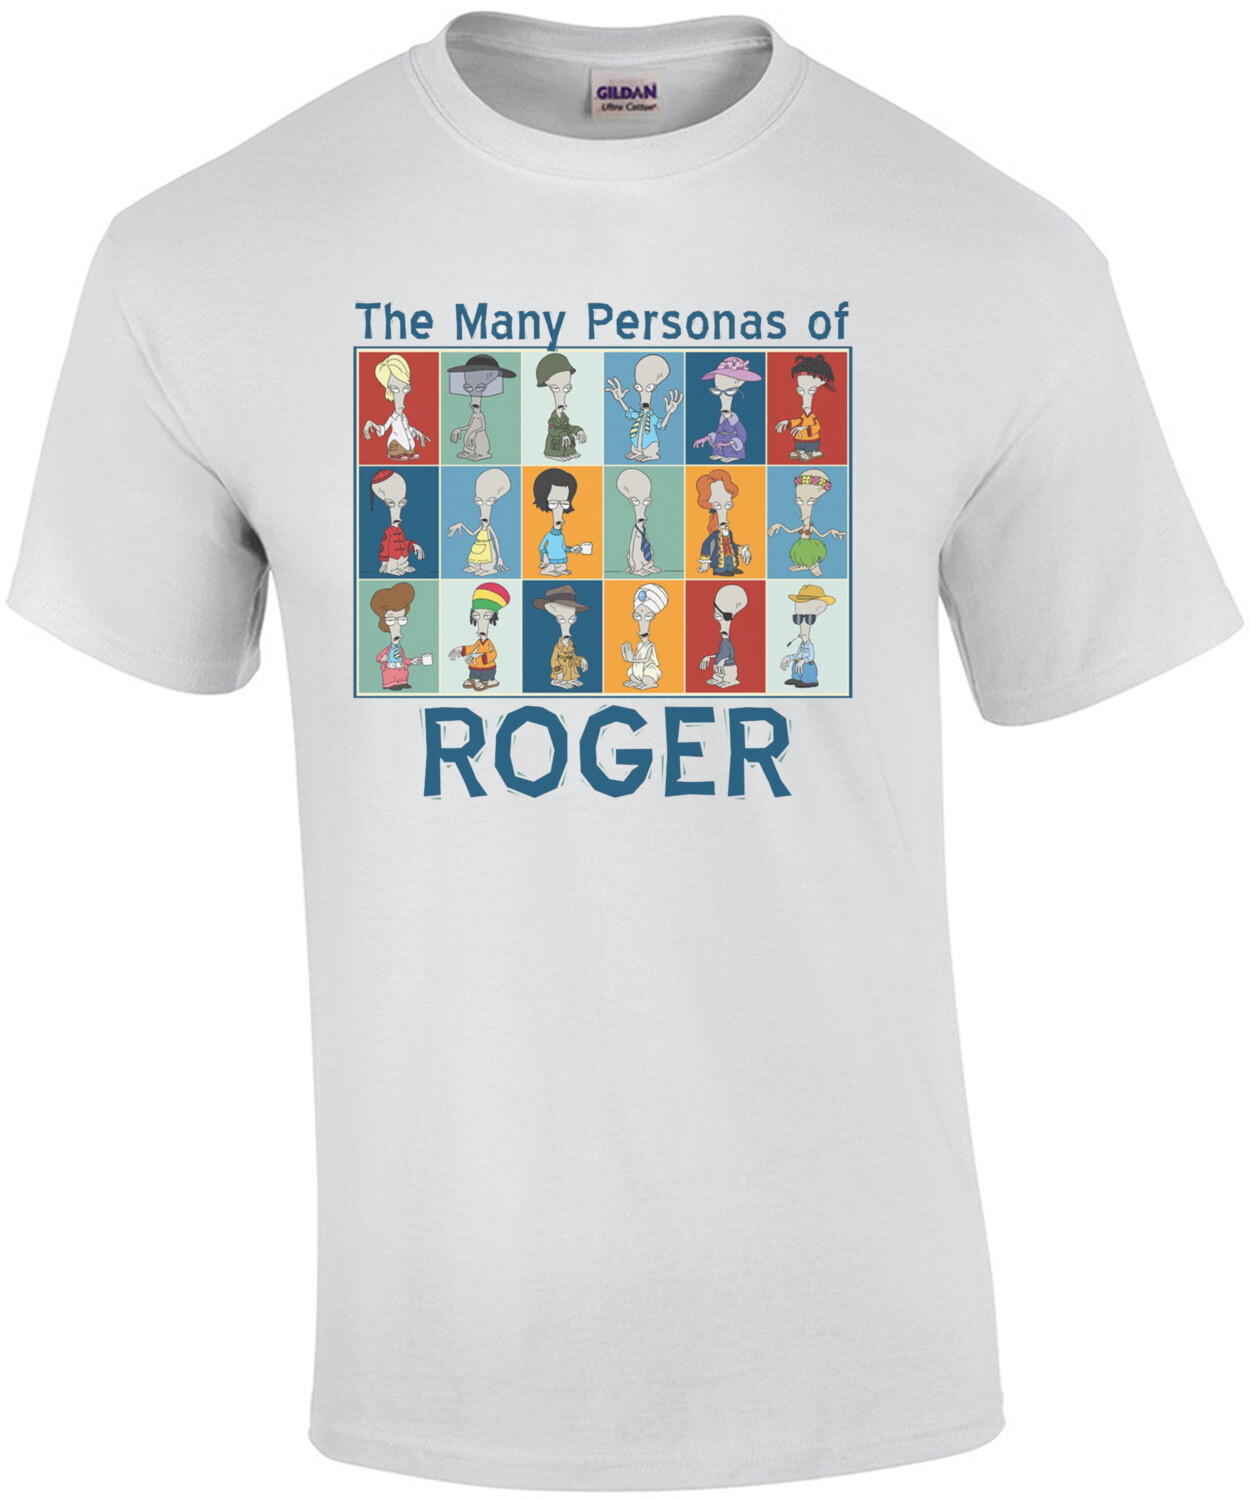 The Many Personas of Roger - American Dad! T-Shirt